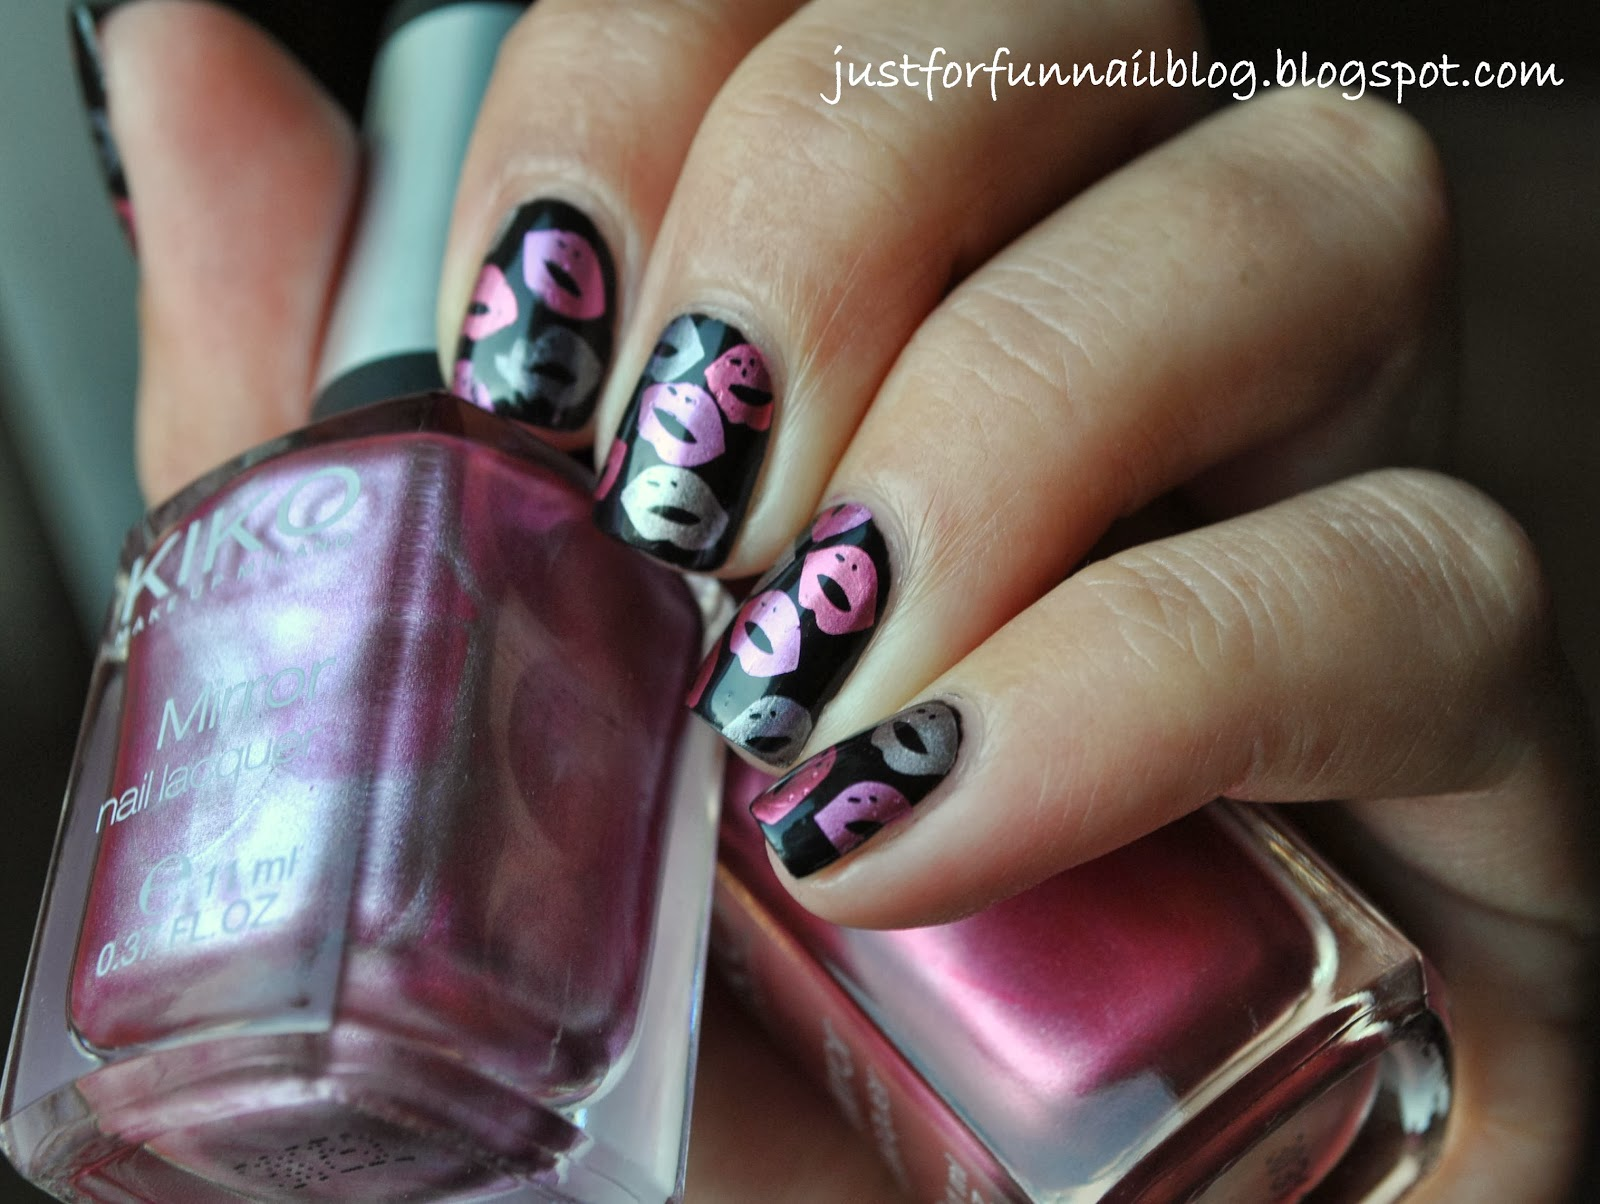 Week of Love V'day Nail Art Challenge - Day 2 - Kisses